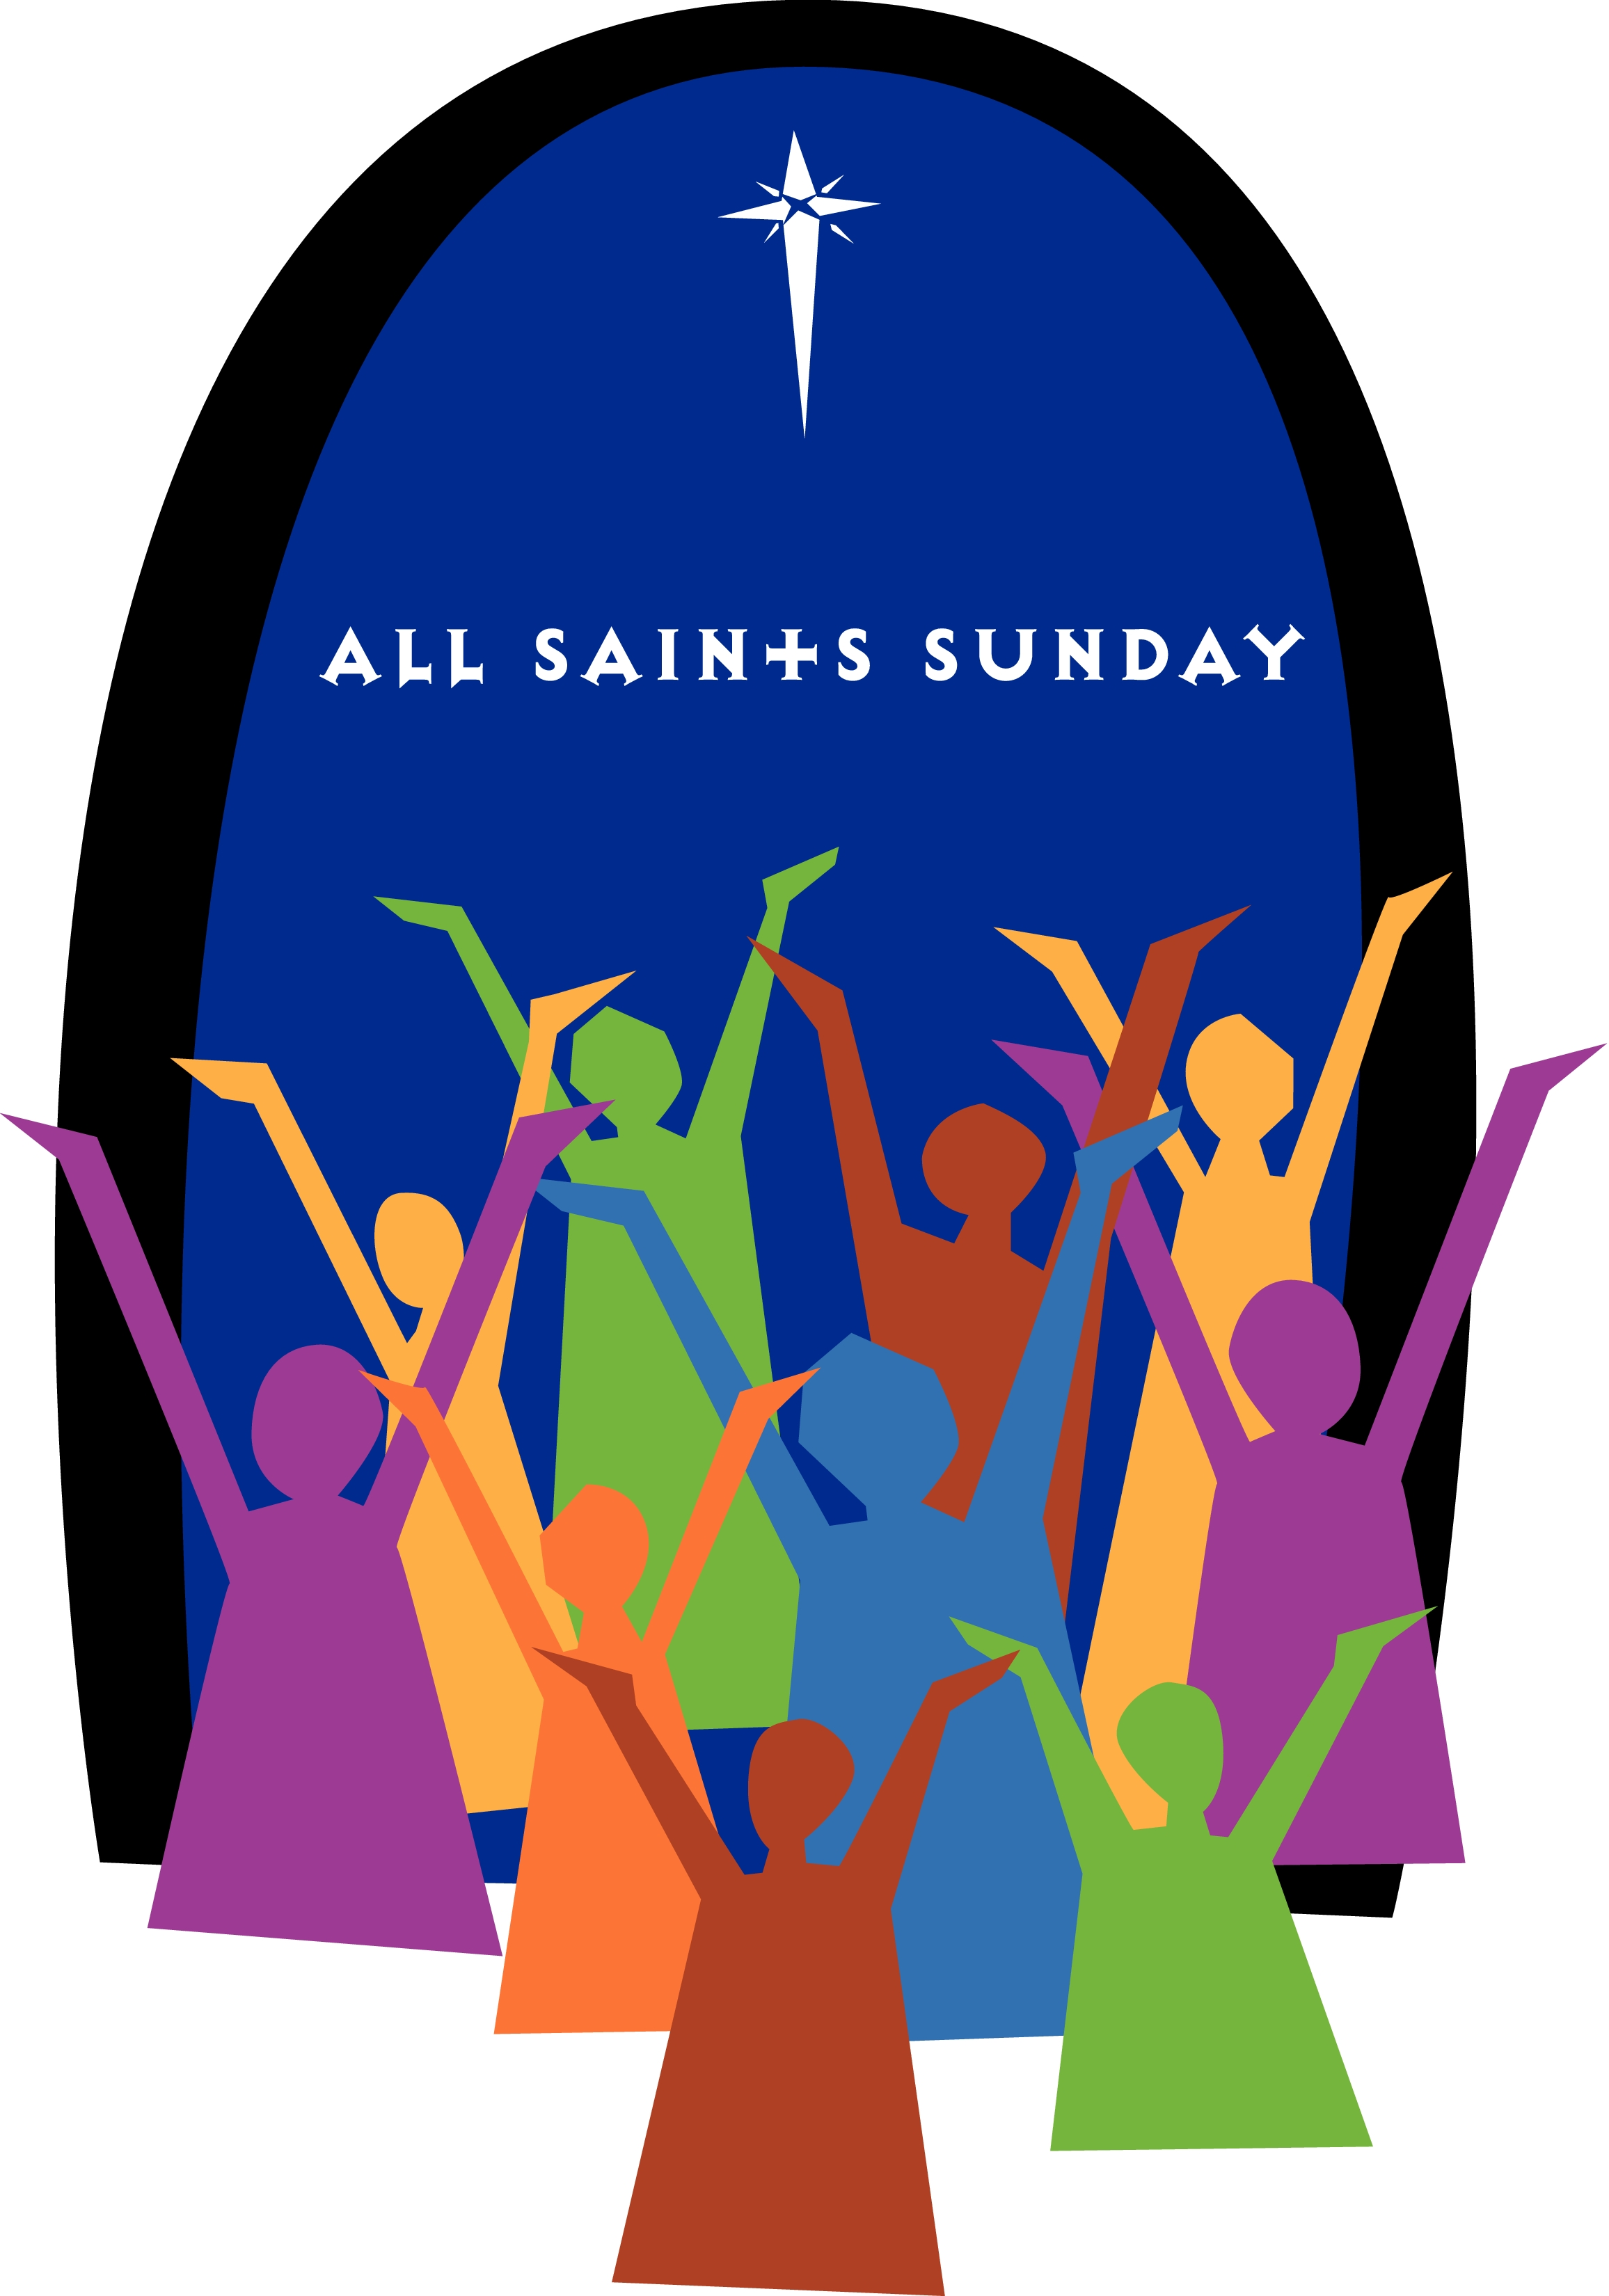 All saints sunday 2018 clipart clipart black and white library Index of /wp-content/uploads/2018/10 clipart black and white library